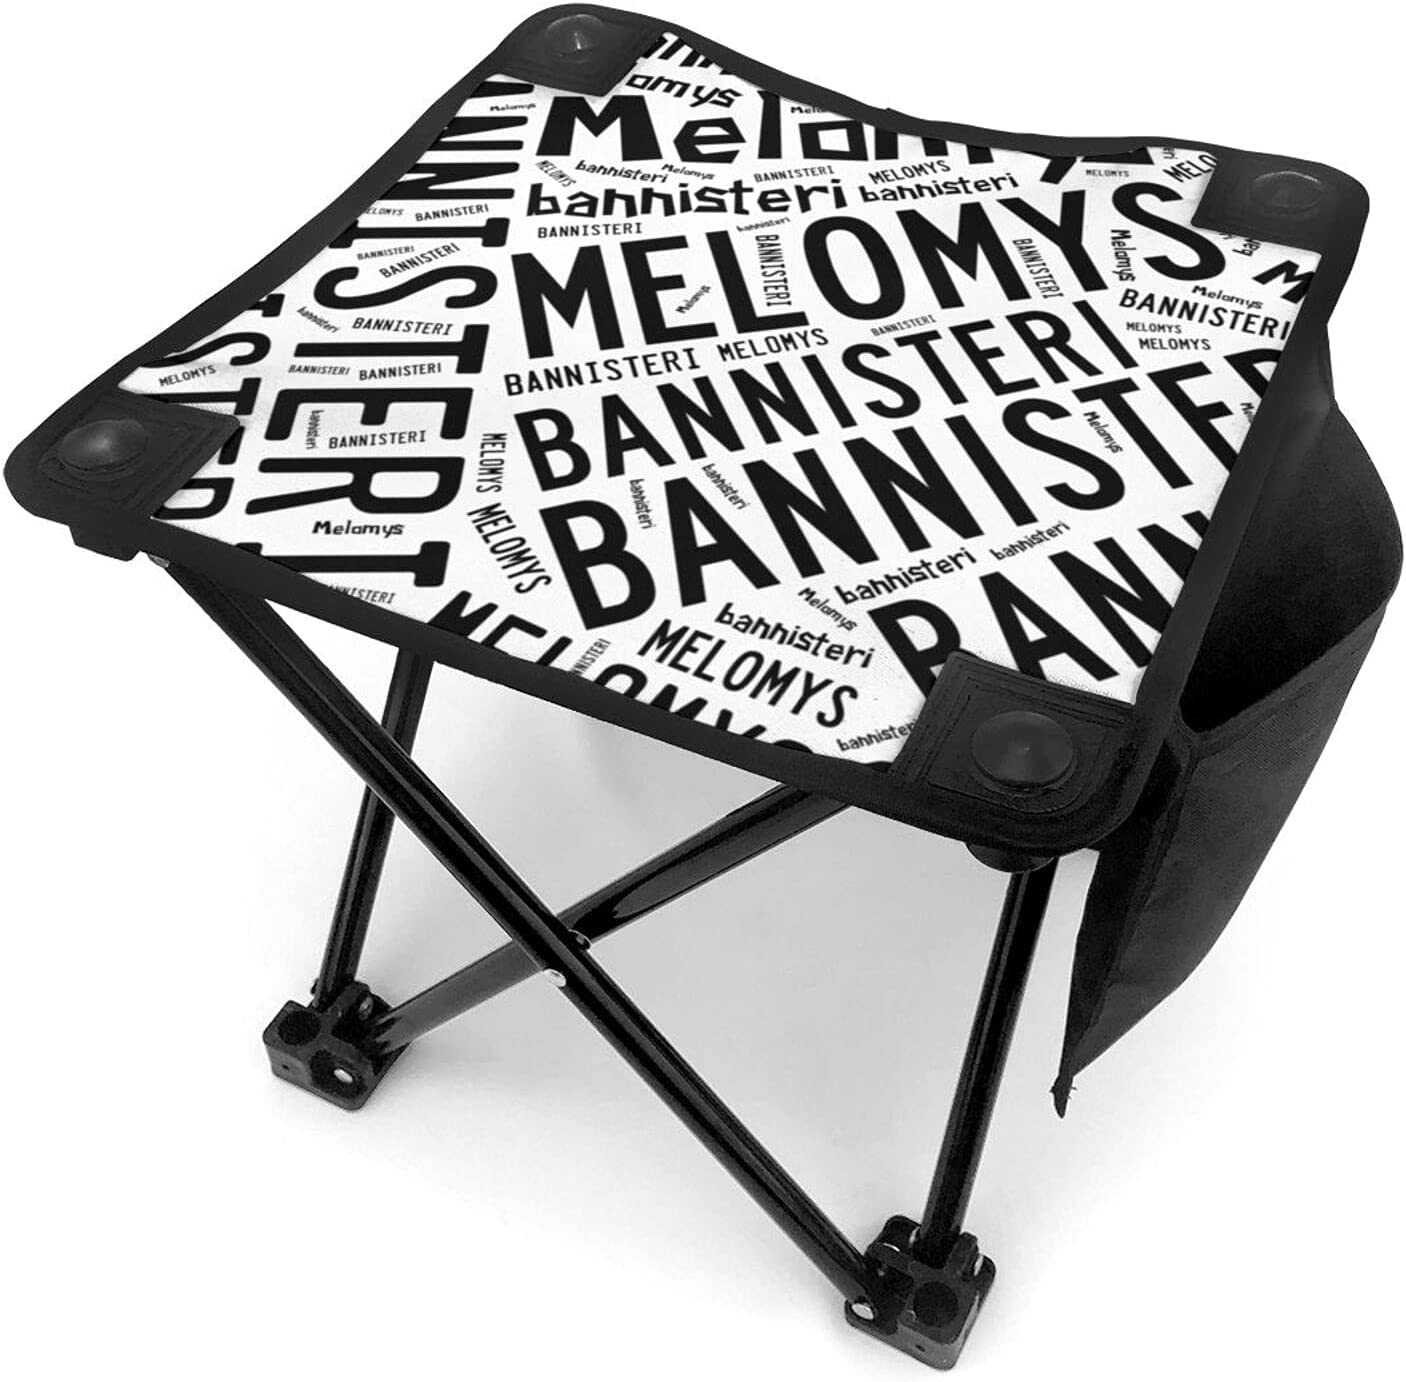 Endangered Species Melomys Bannisteri Stool Folding NEW before selling Camping Special Campaign Oxfo